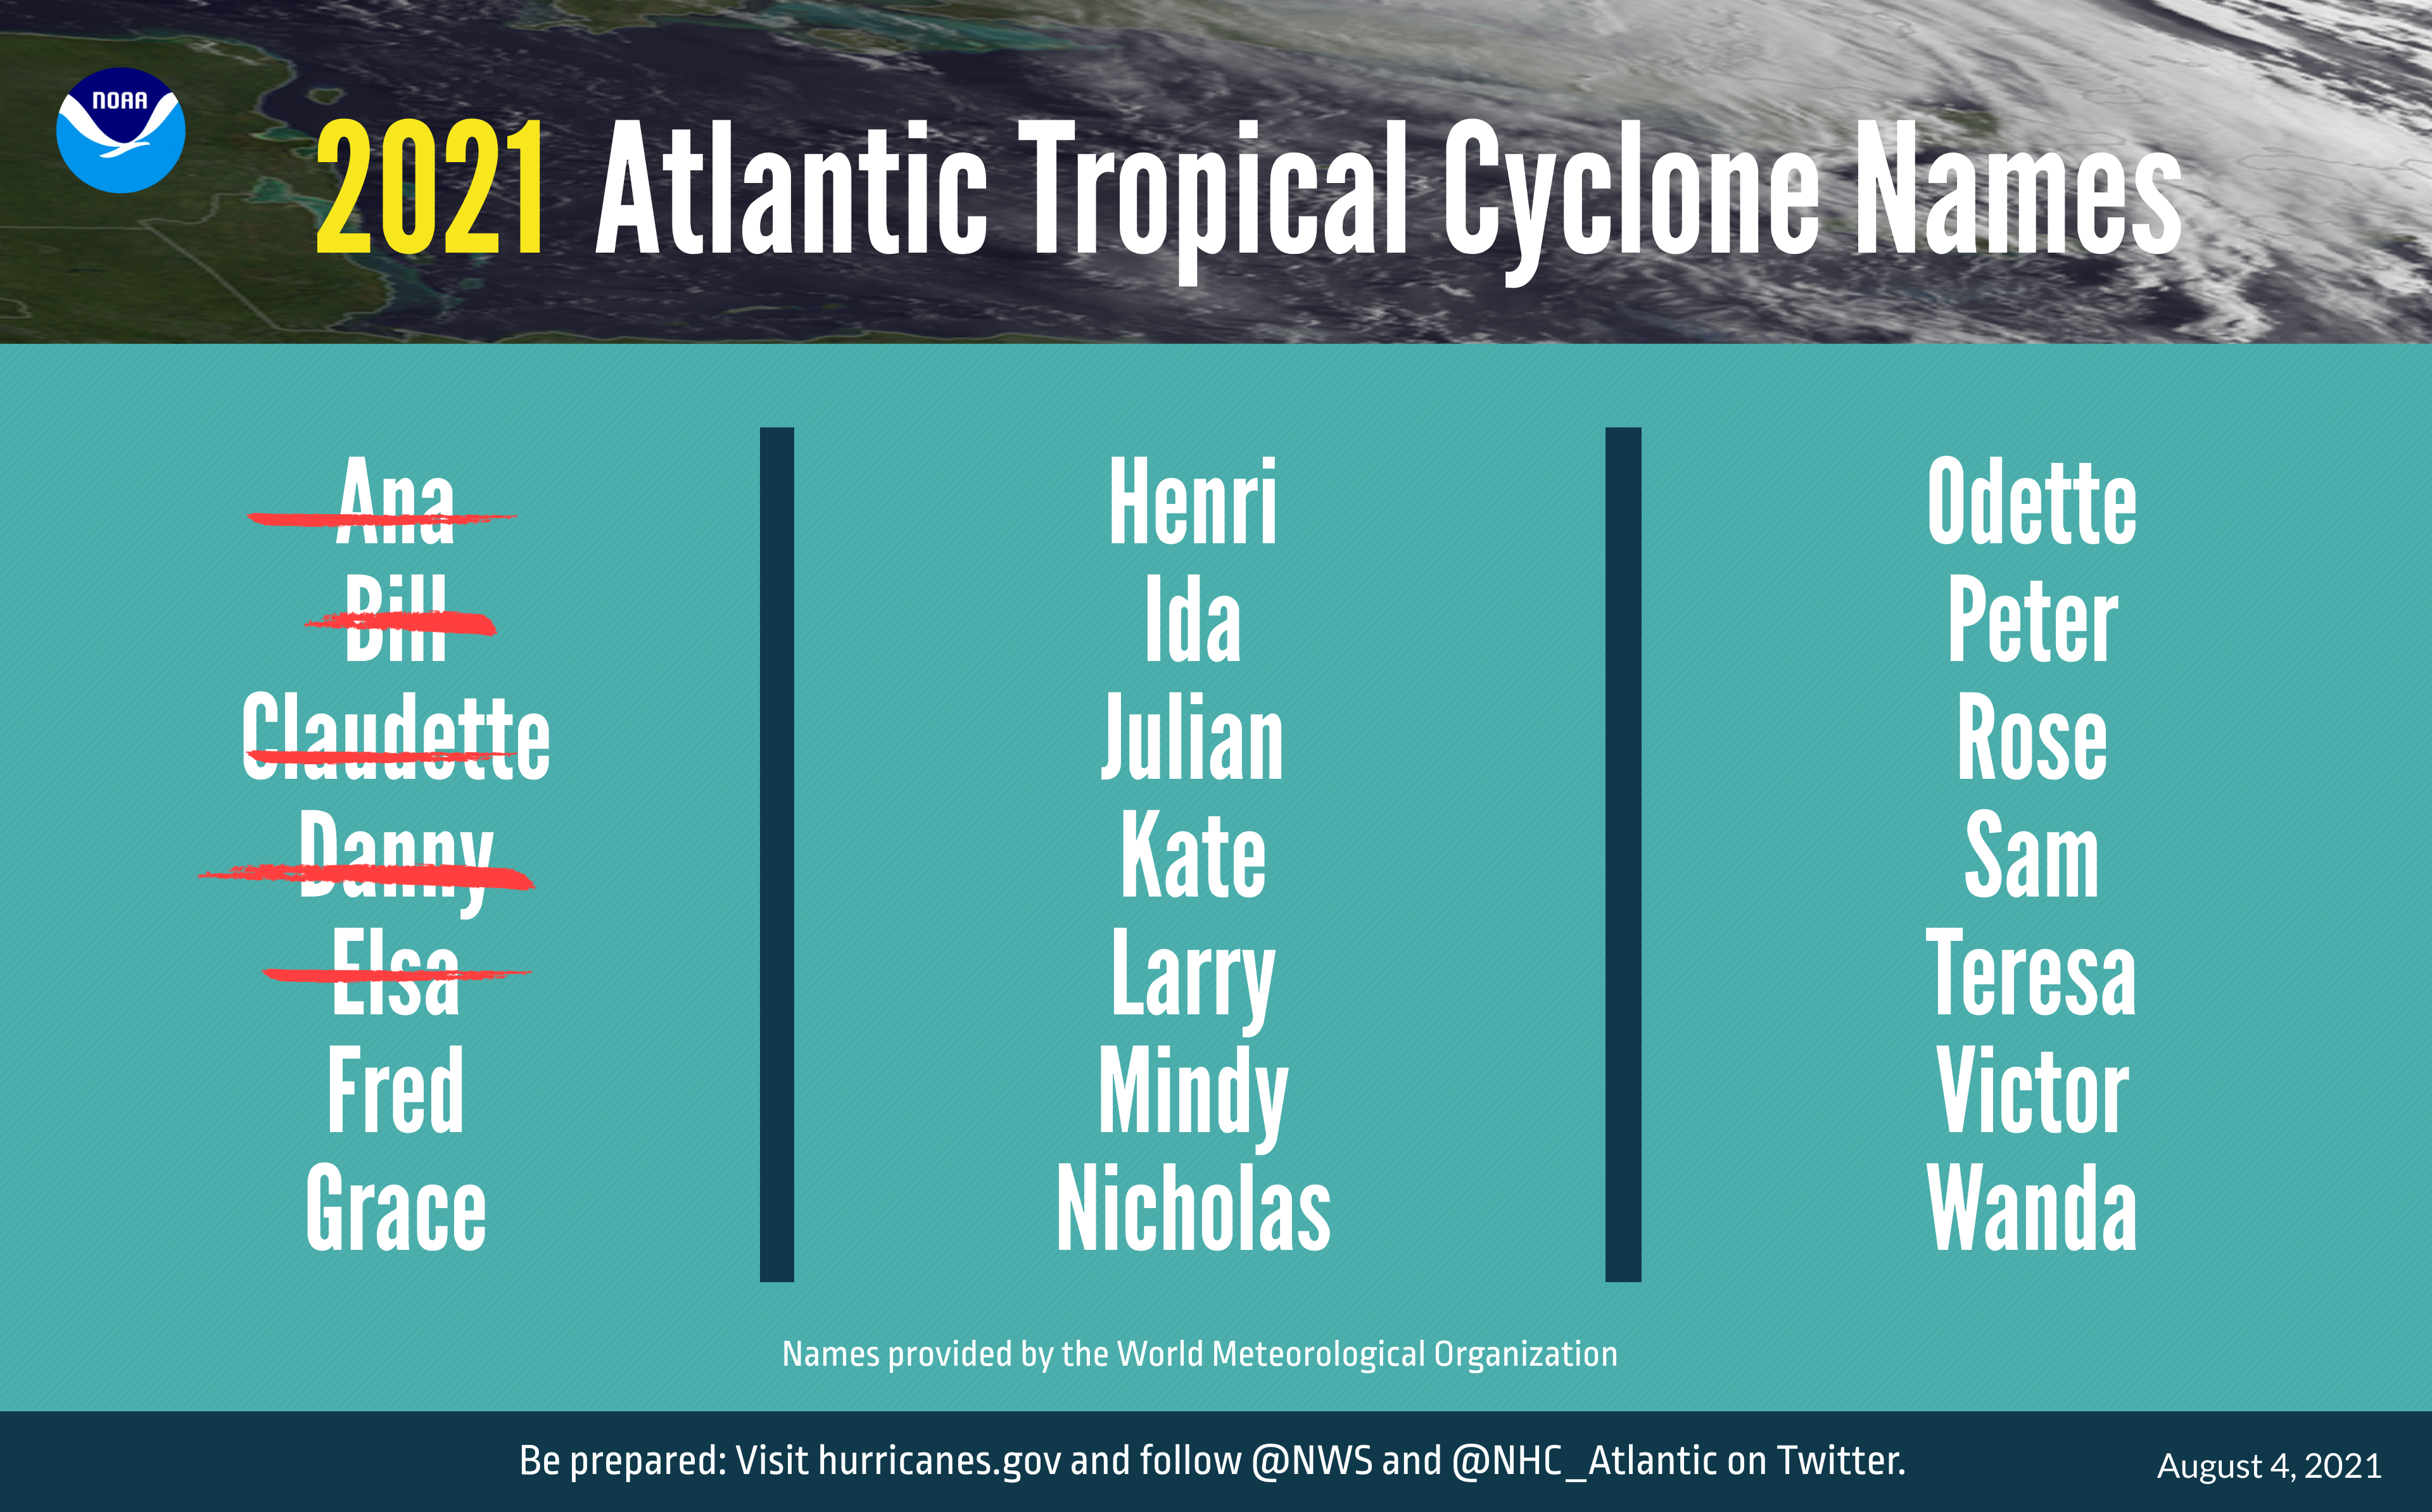 The 2021 Atlantic tropical cyclone names selected by the World Meteorological Organization.